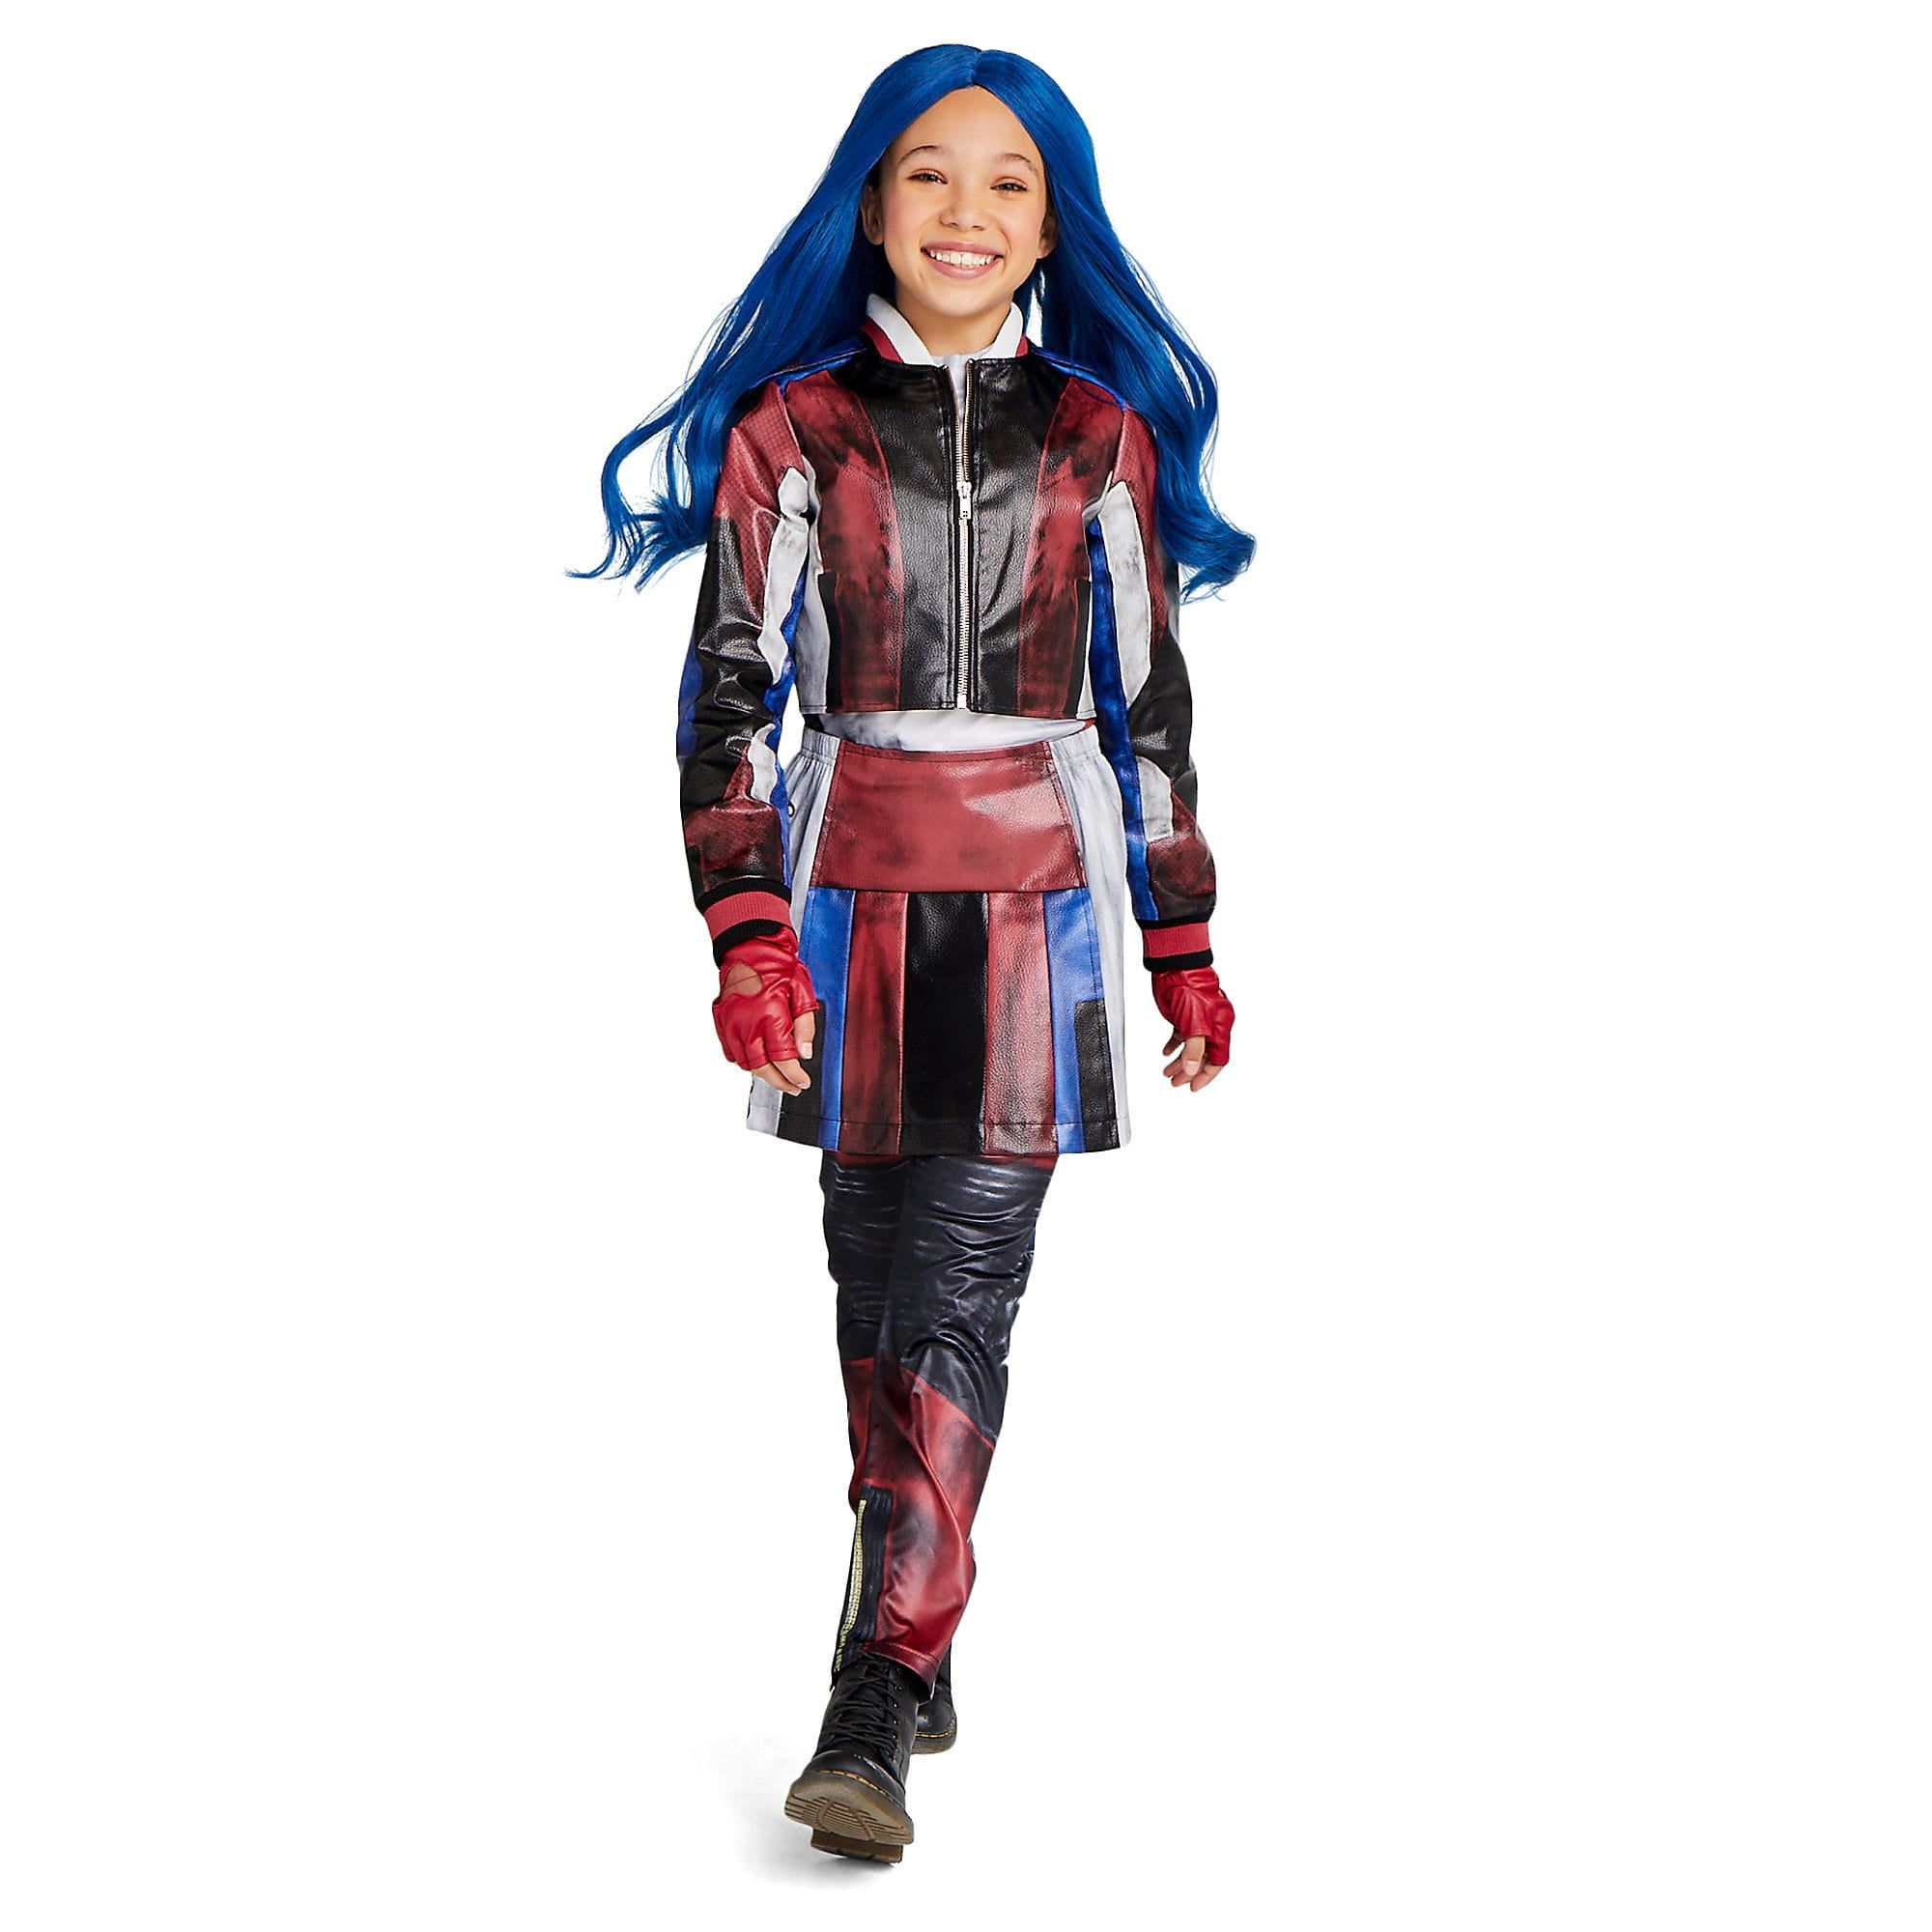 Descendants 3 Halloween Costumes | POPSUGAR Family